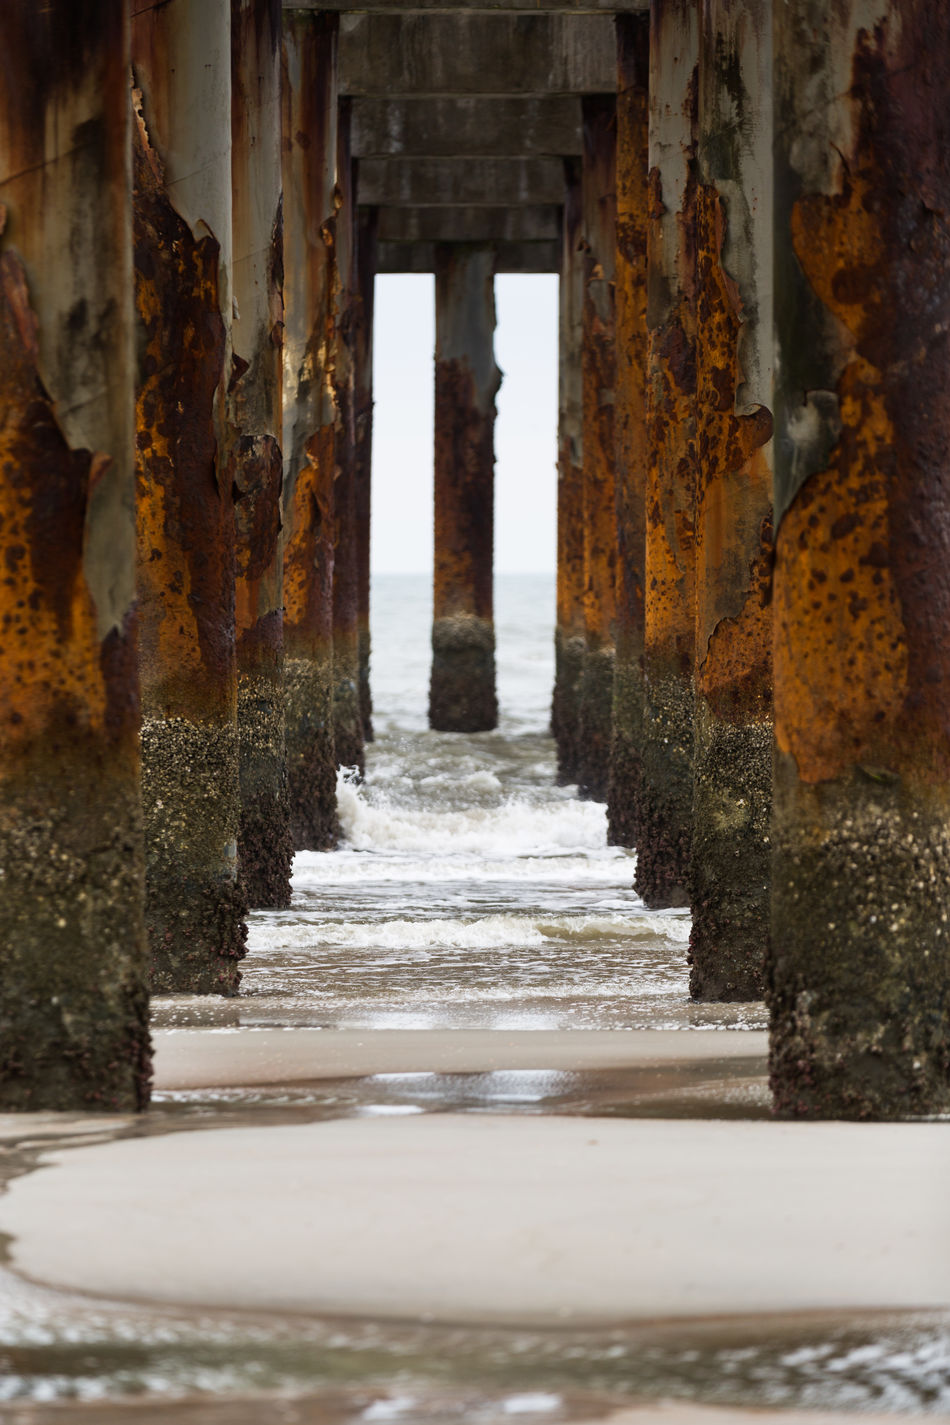 Architectural Column Architecture Bridge - Man Made Structure Built Structure Composition Day Nature No People Outdoors Pattern, Texture, Shape And Form Rusty Sand Sea Symmetrical Symmetry Textured  Underneath Water Waves